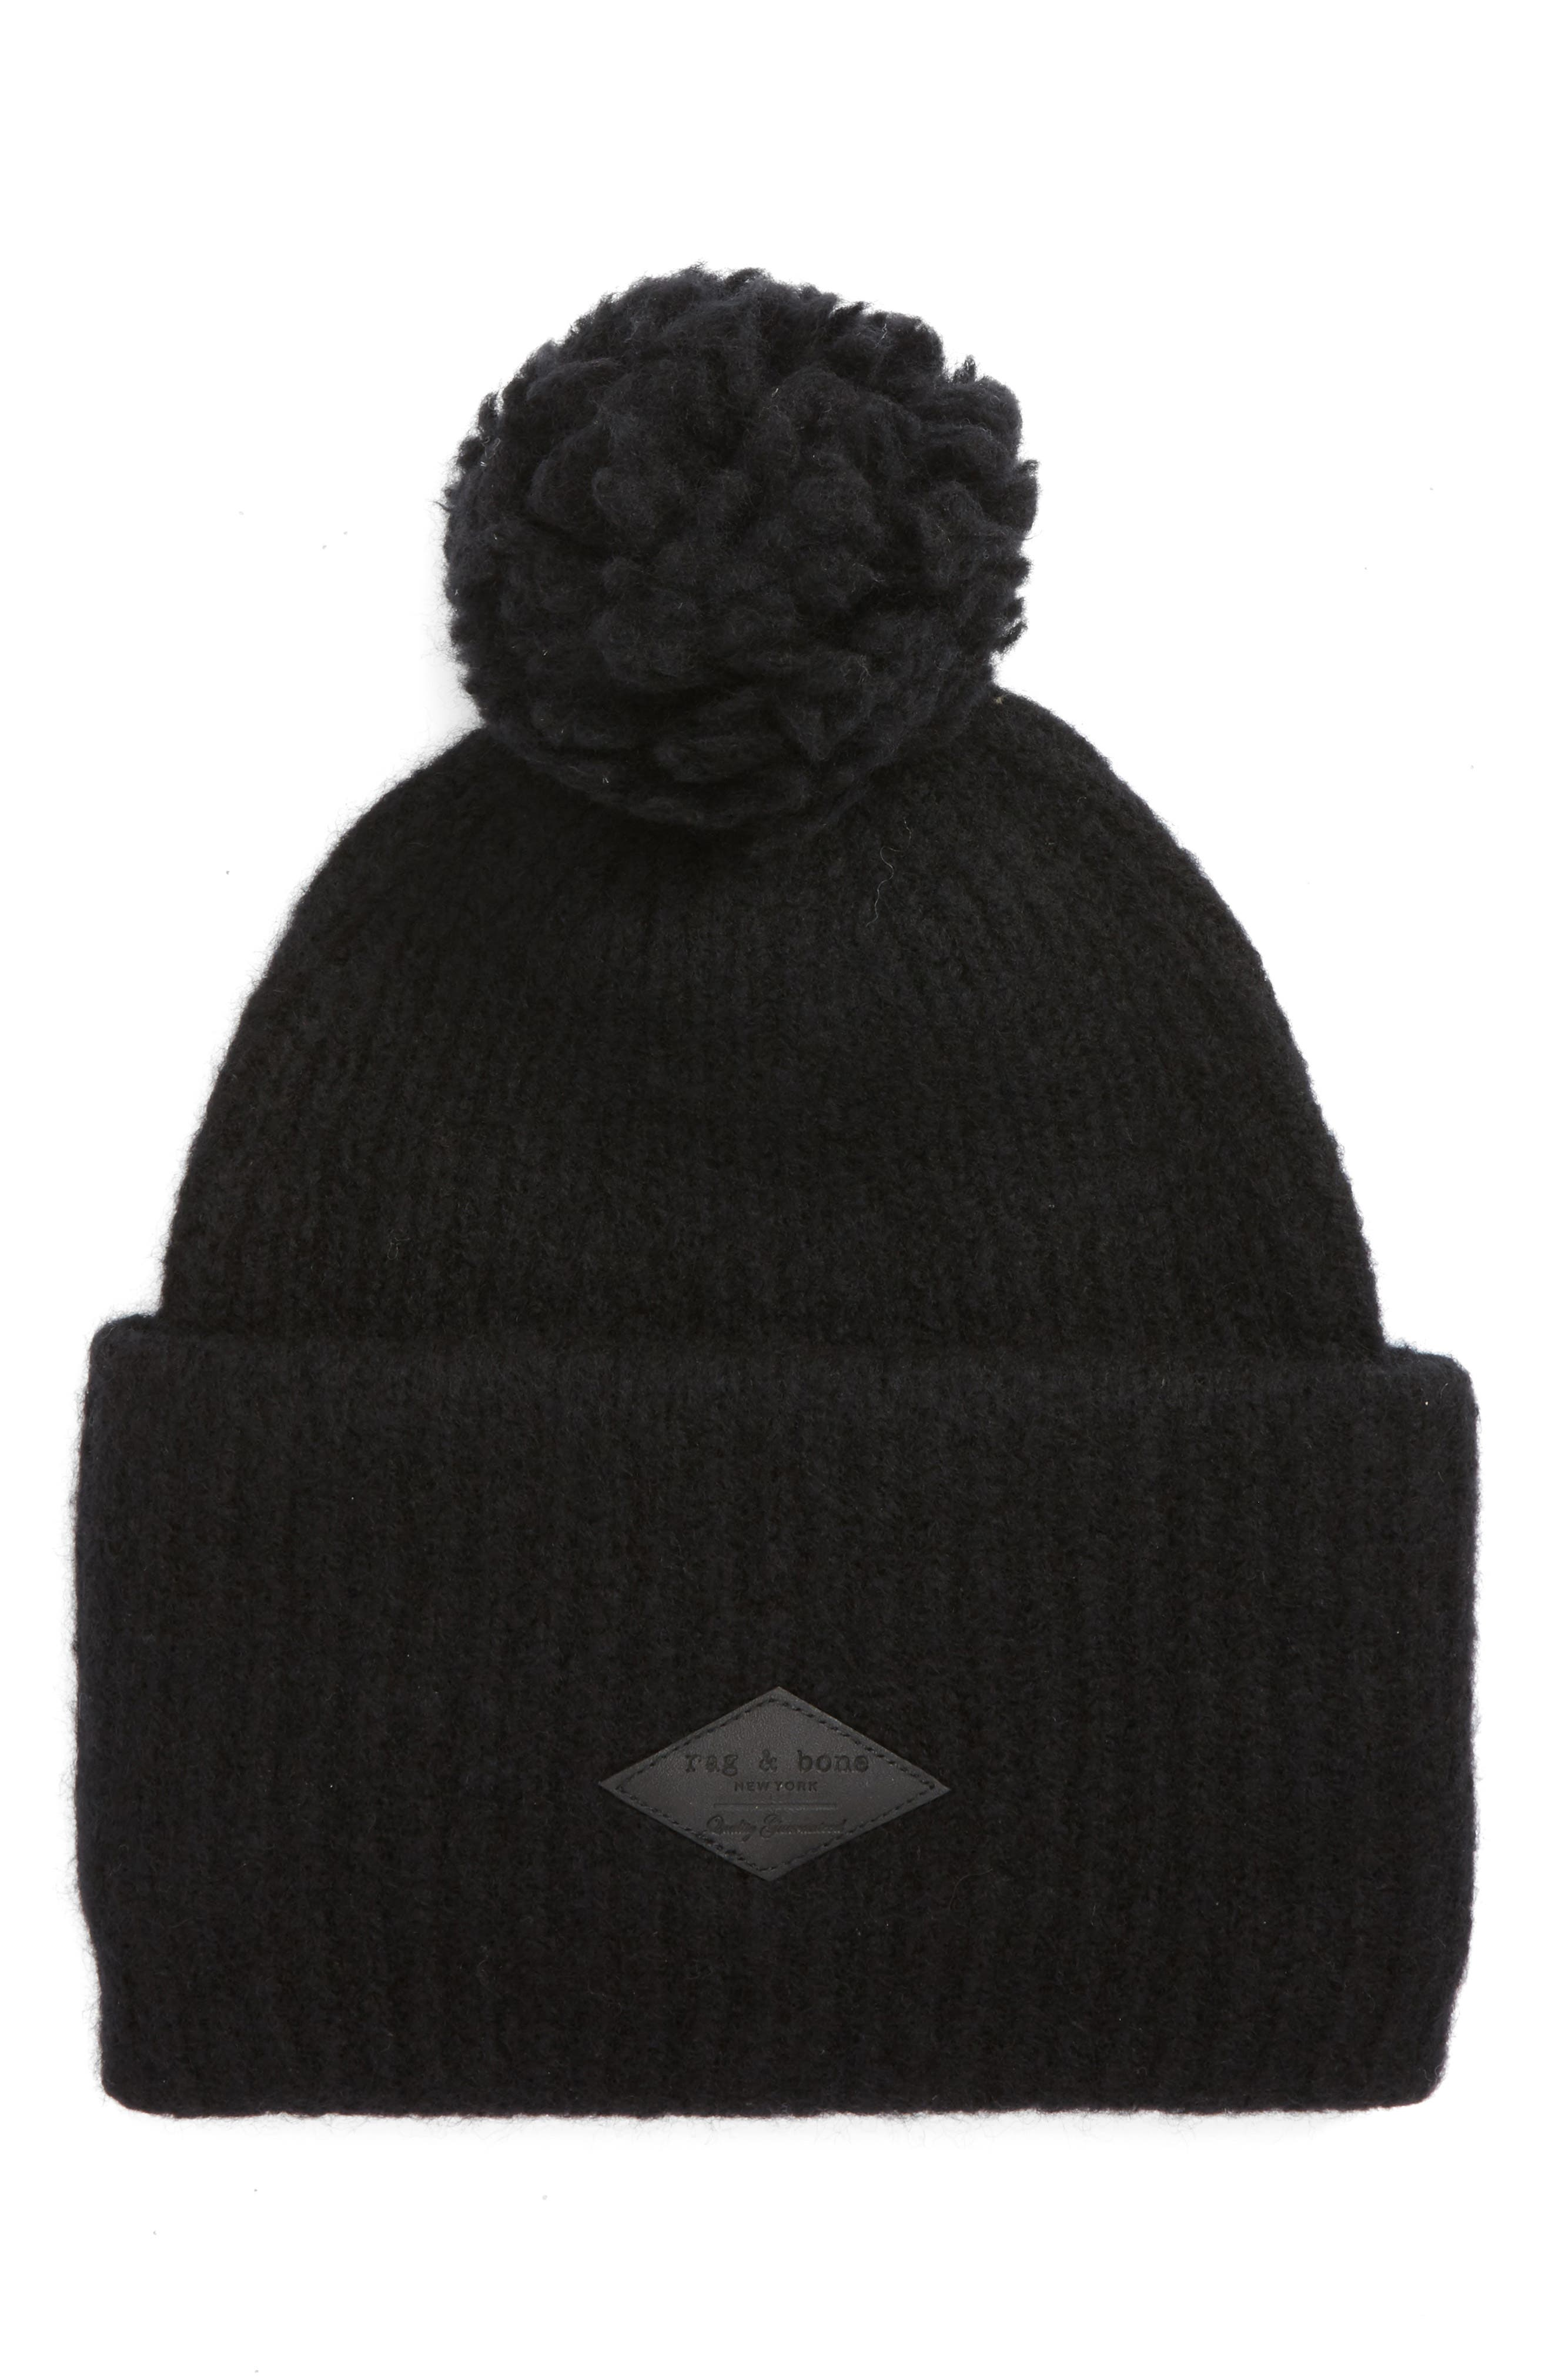 Alternate Image 1 Selected - rag & bone Francie Bouclé Knit Pom Beanie